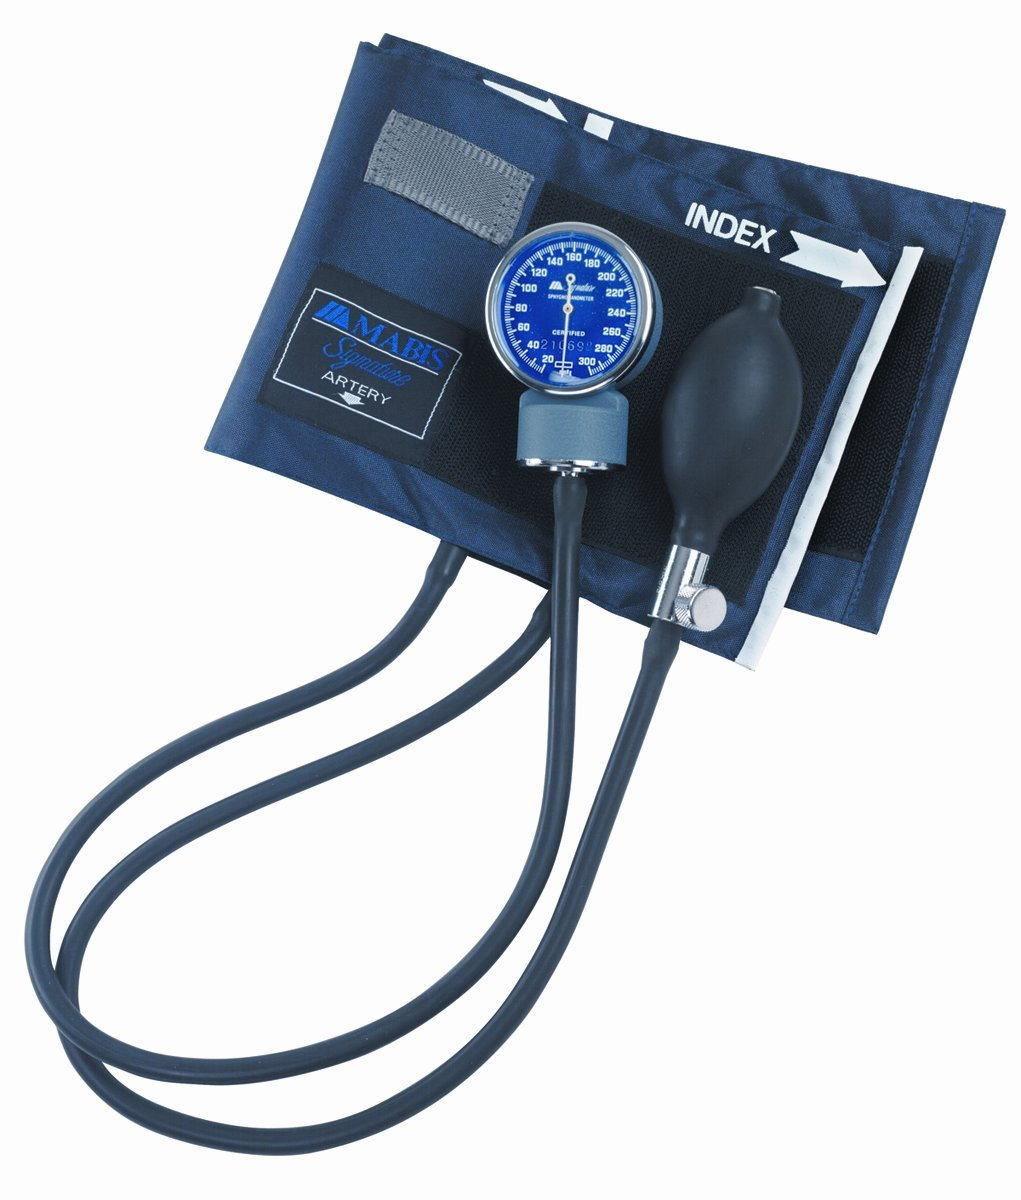 MABIS Signature Series Aneroid Sphygmomanometer with Blue Nylon Cuff for Home or Professional Use, Large Adult, Blue